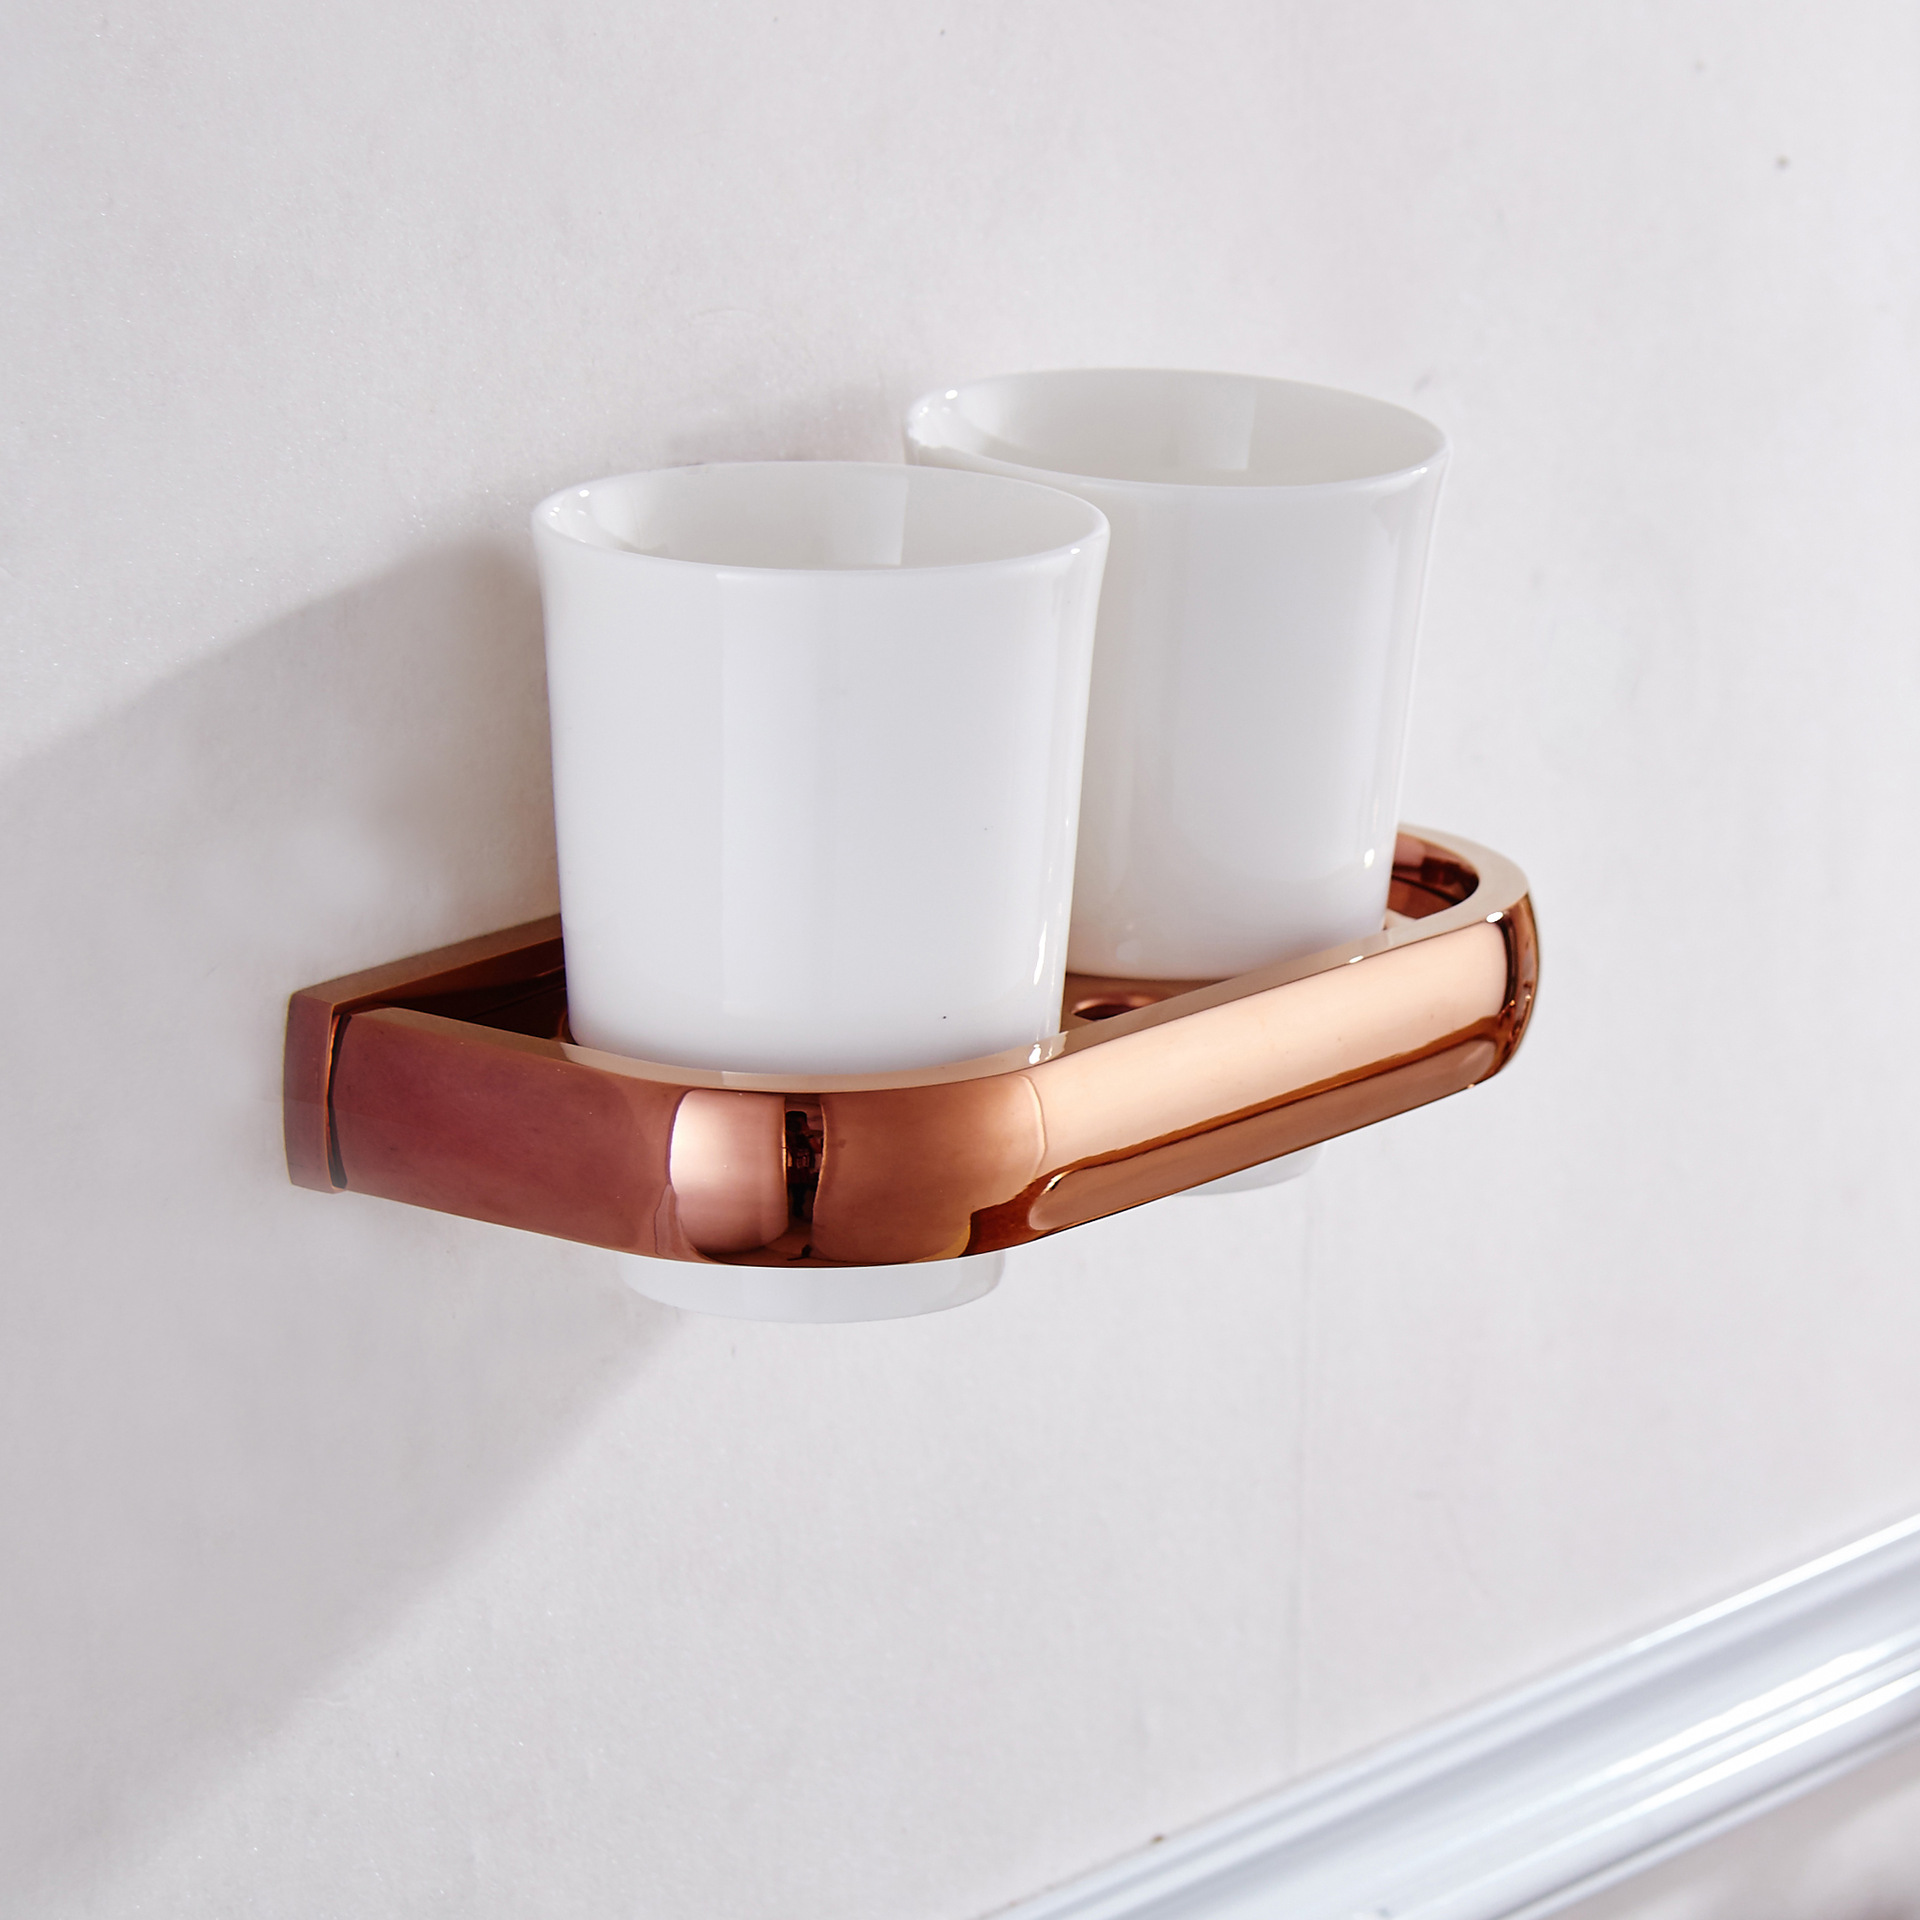 AUSWIND Contemporary Rose Gold Polished Solid Brass Toothbrush Holders with Ceramic Cup Wall Mount M8508 image